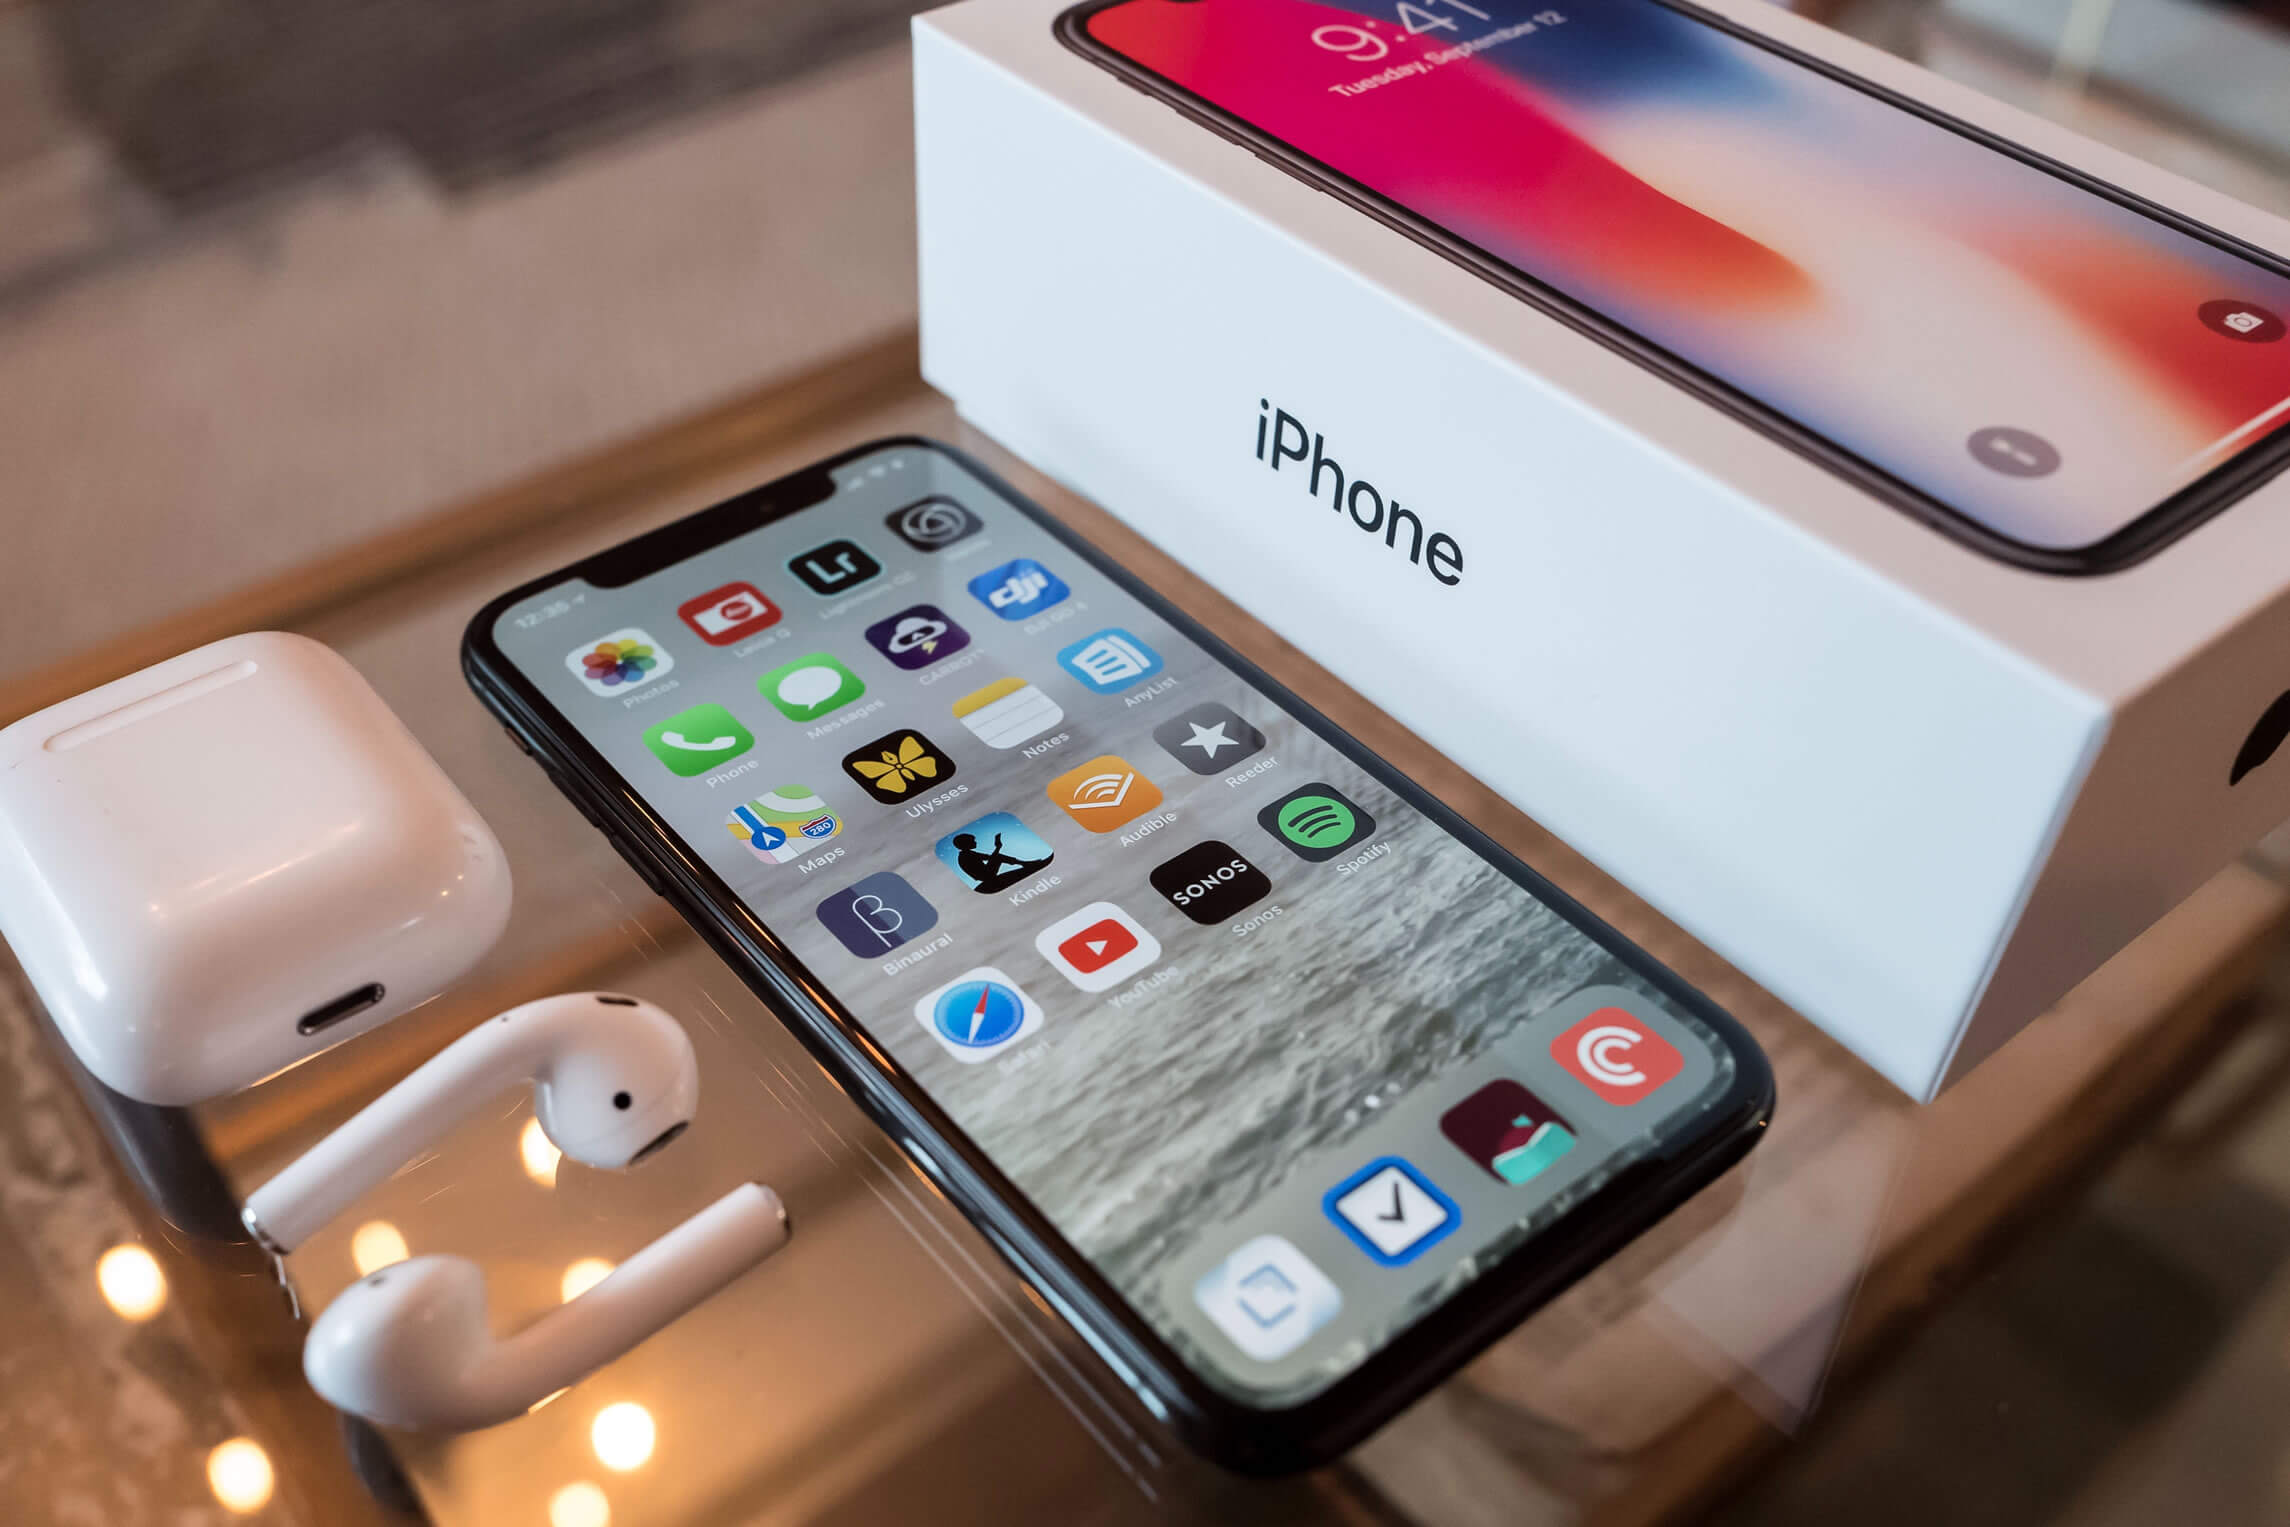 Kuo: iPhone production will remain slow through the second quarter of 2020